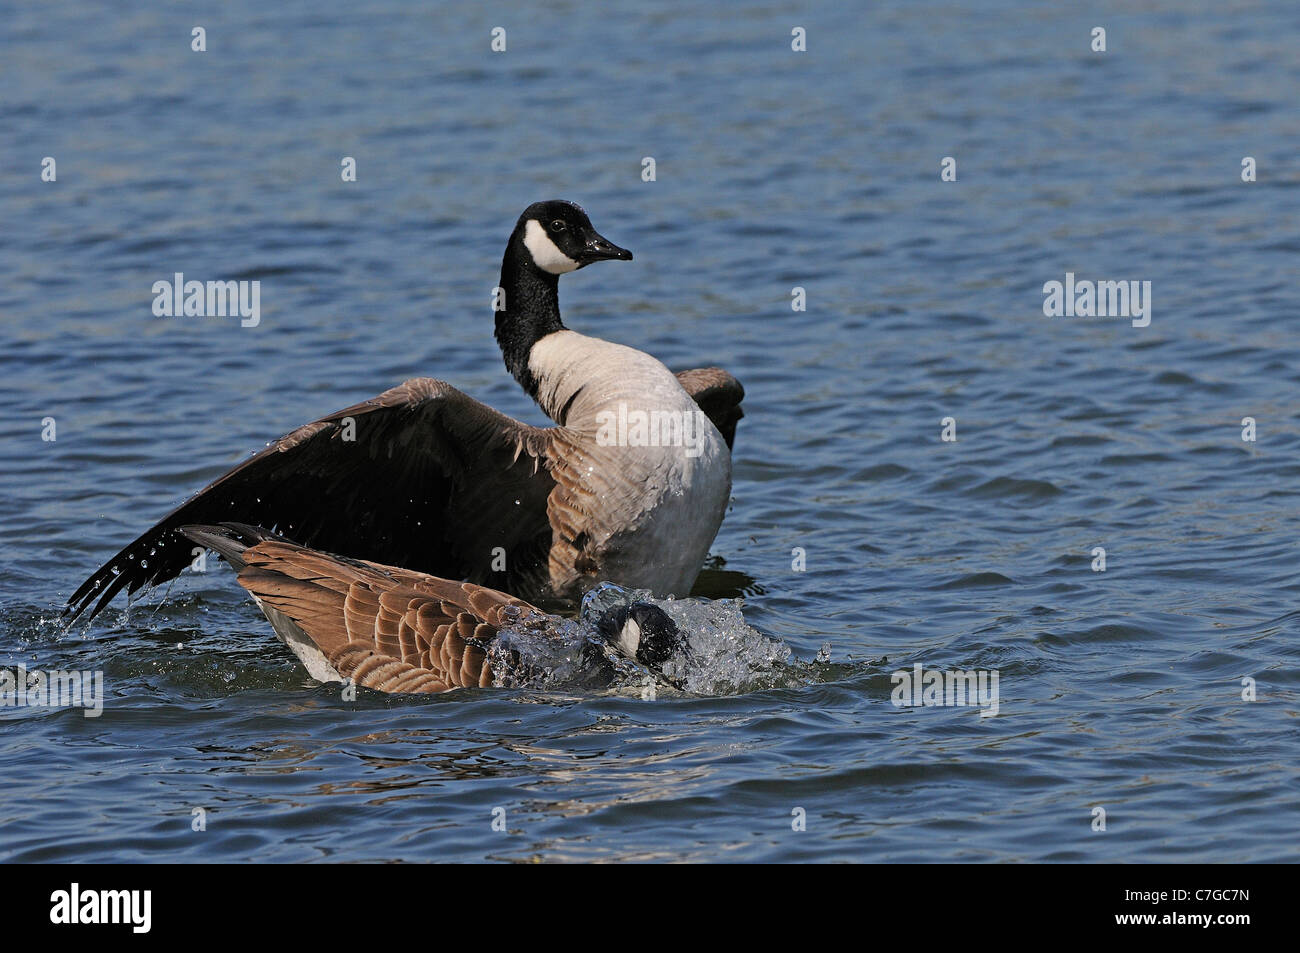 Canada Goose (Branta canadensis) pair in water, washing and stretching after mating, Oxfordshire, UK - Stock Image